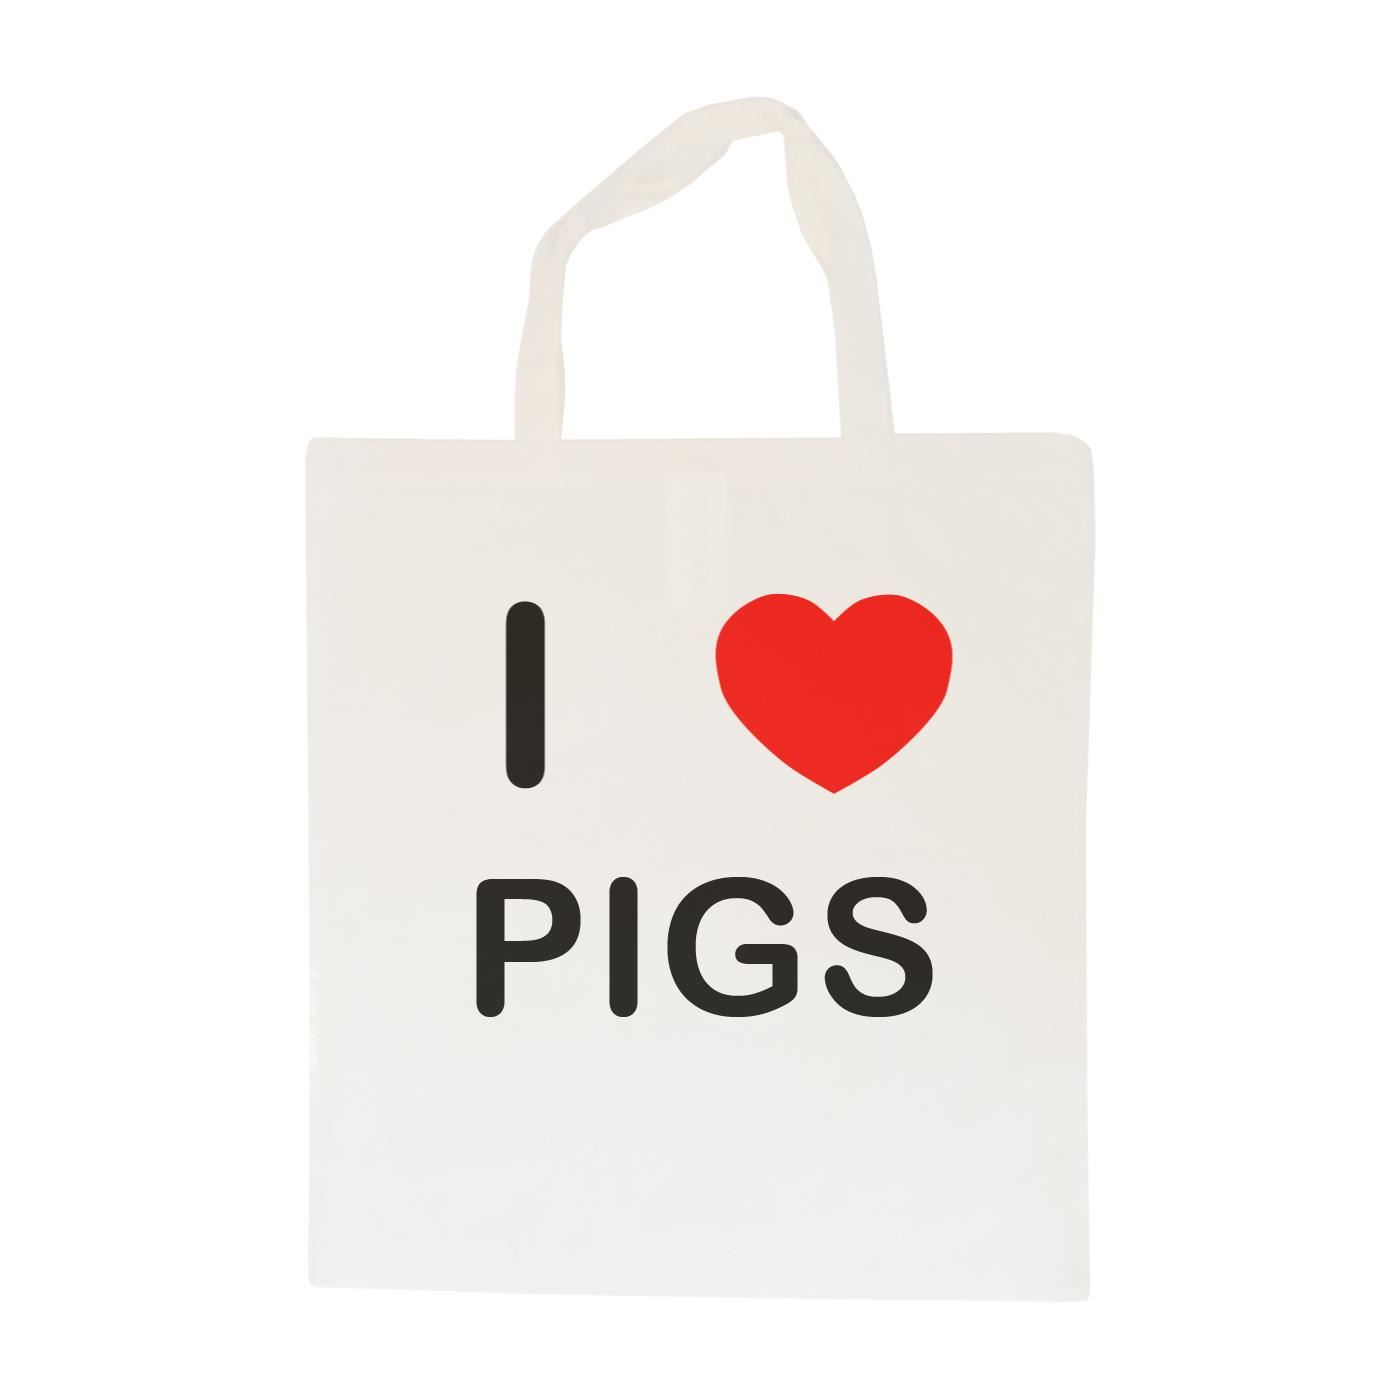 I Love Pigs - Cotton Bag | Size choice Tote, Shopper or Sling